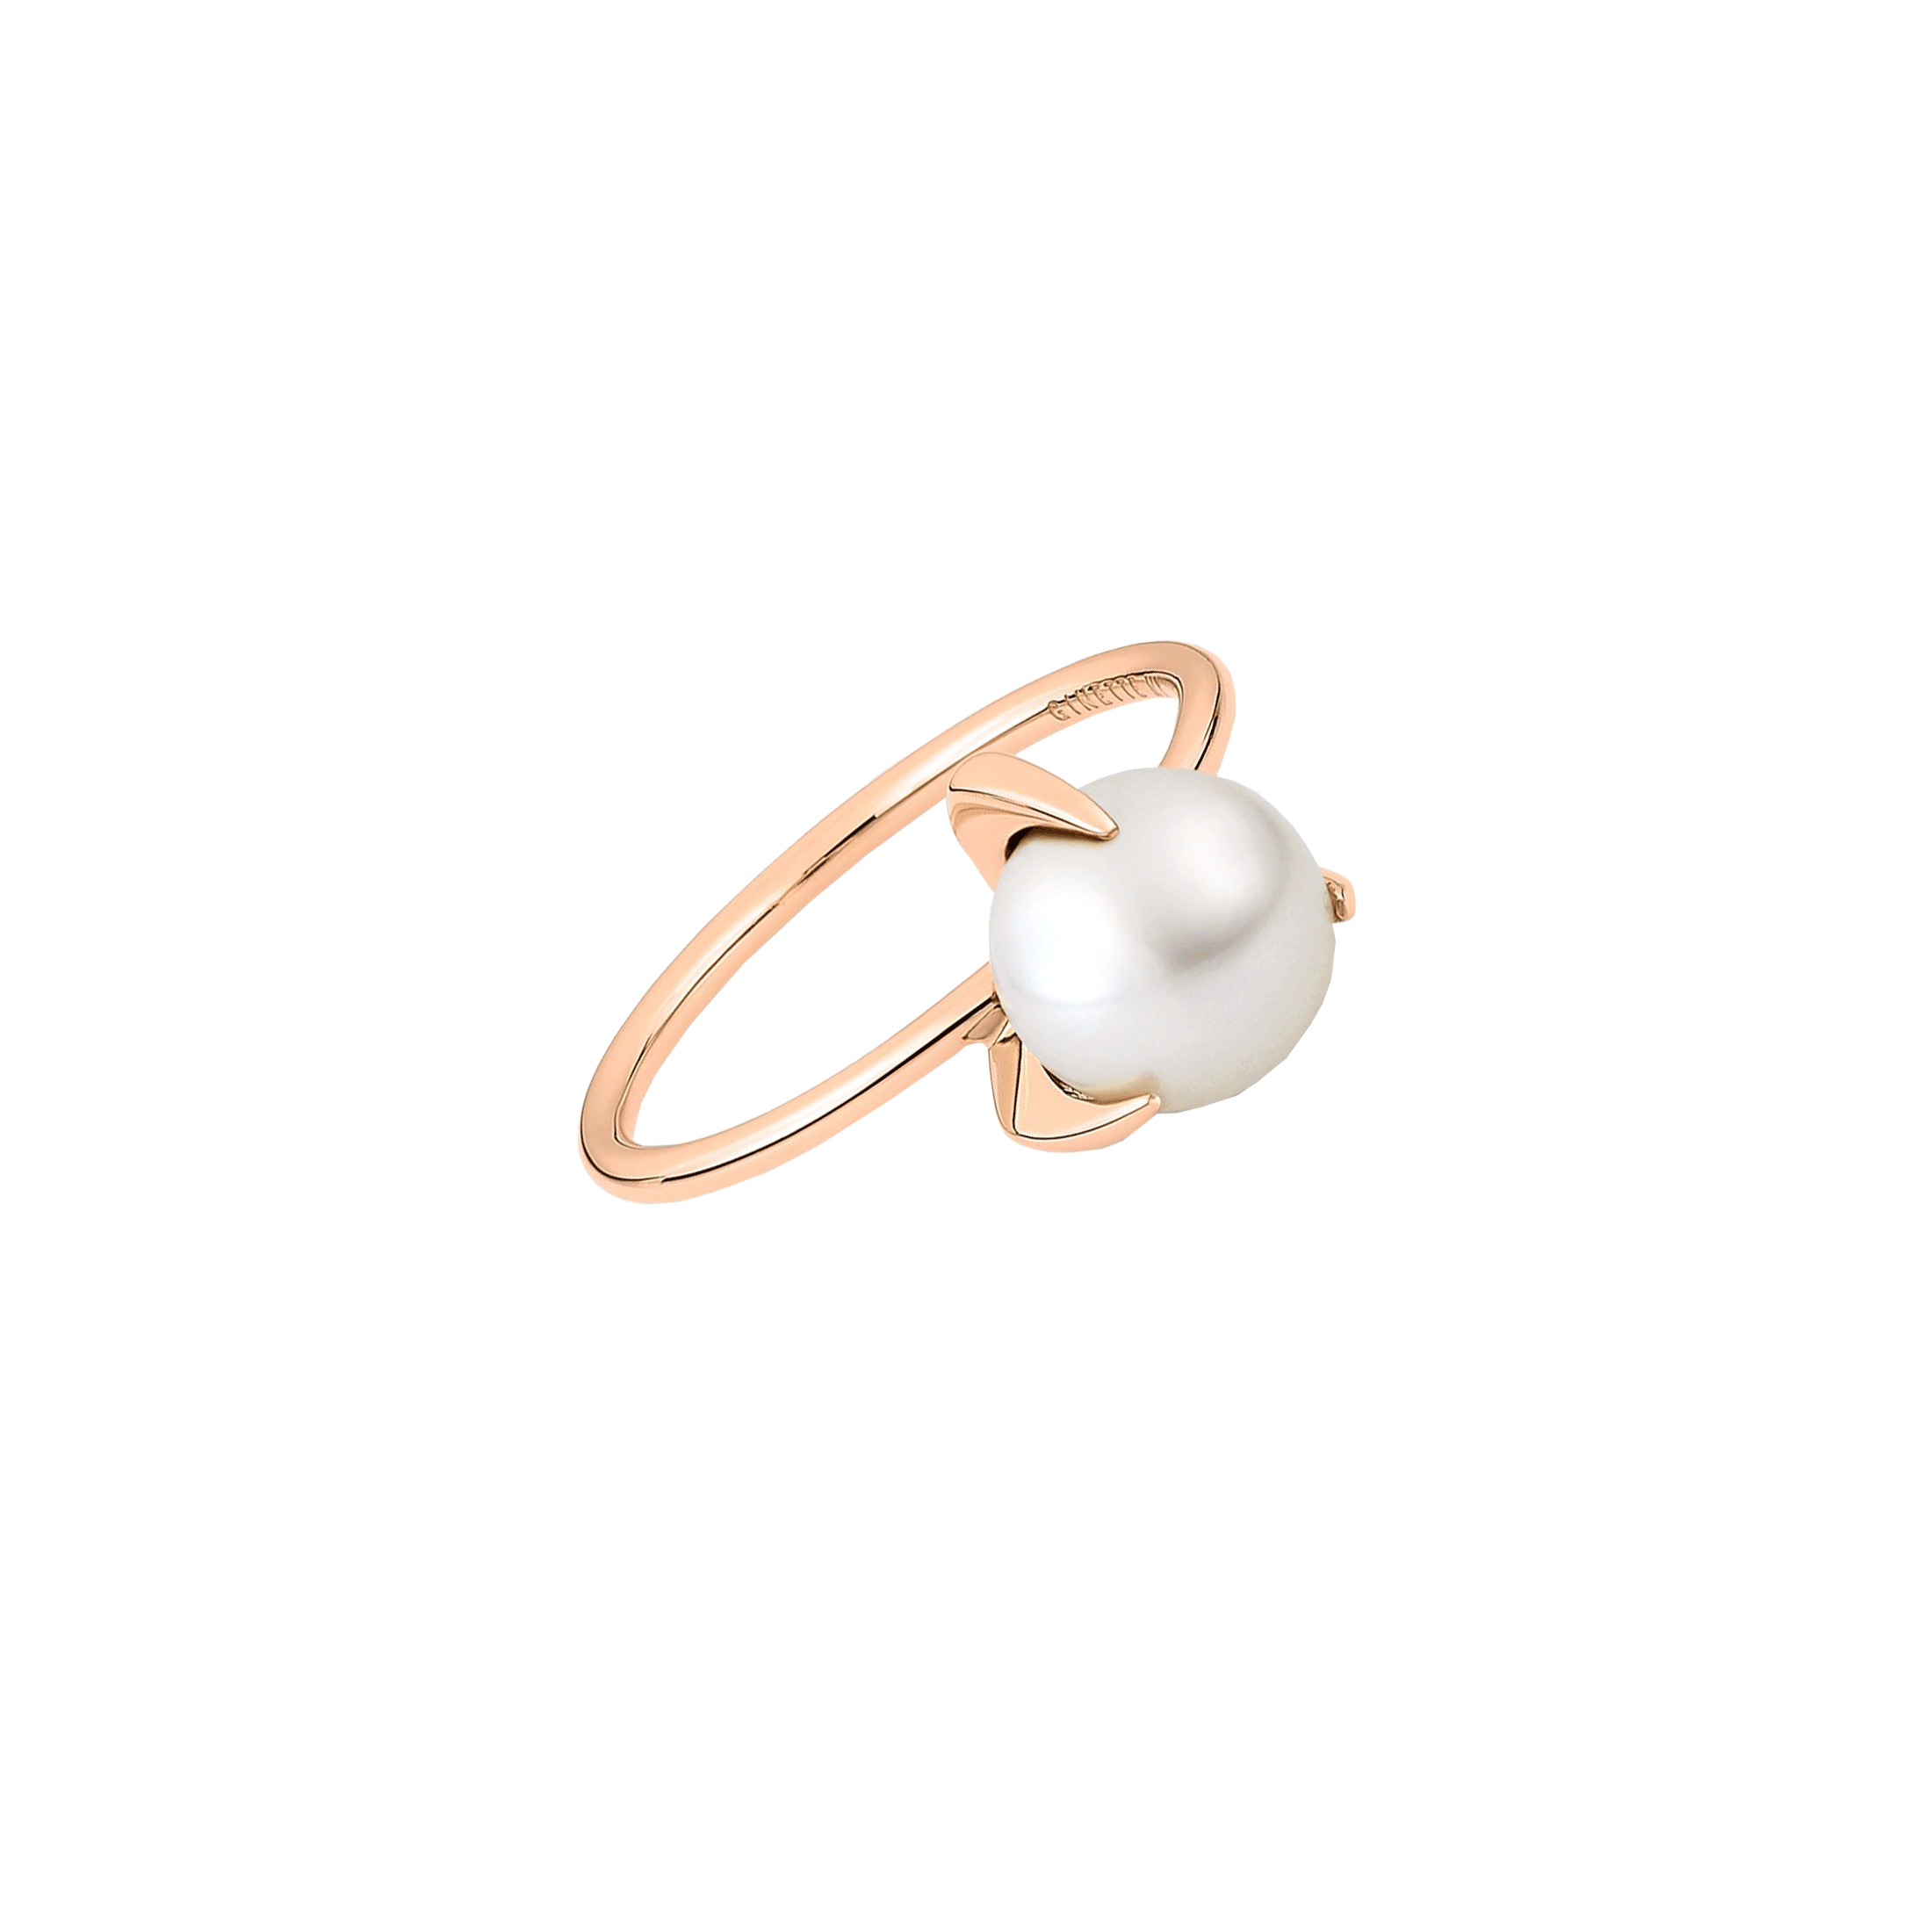 Bague Ginette NY Maria Single Bead en or rose et perle